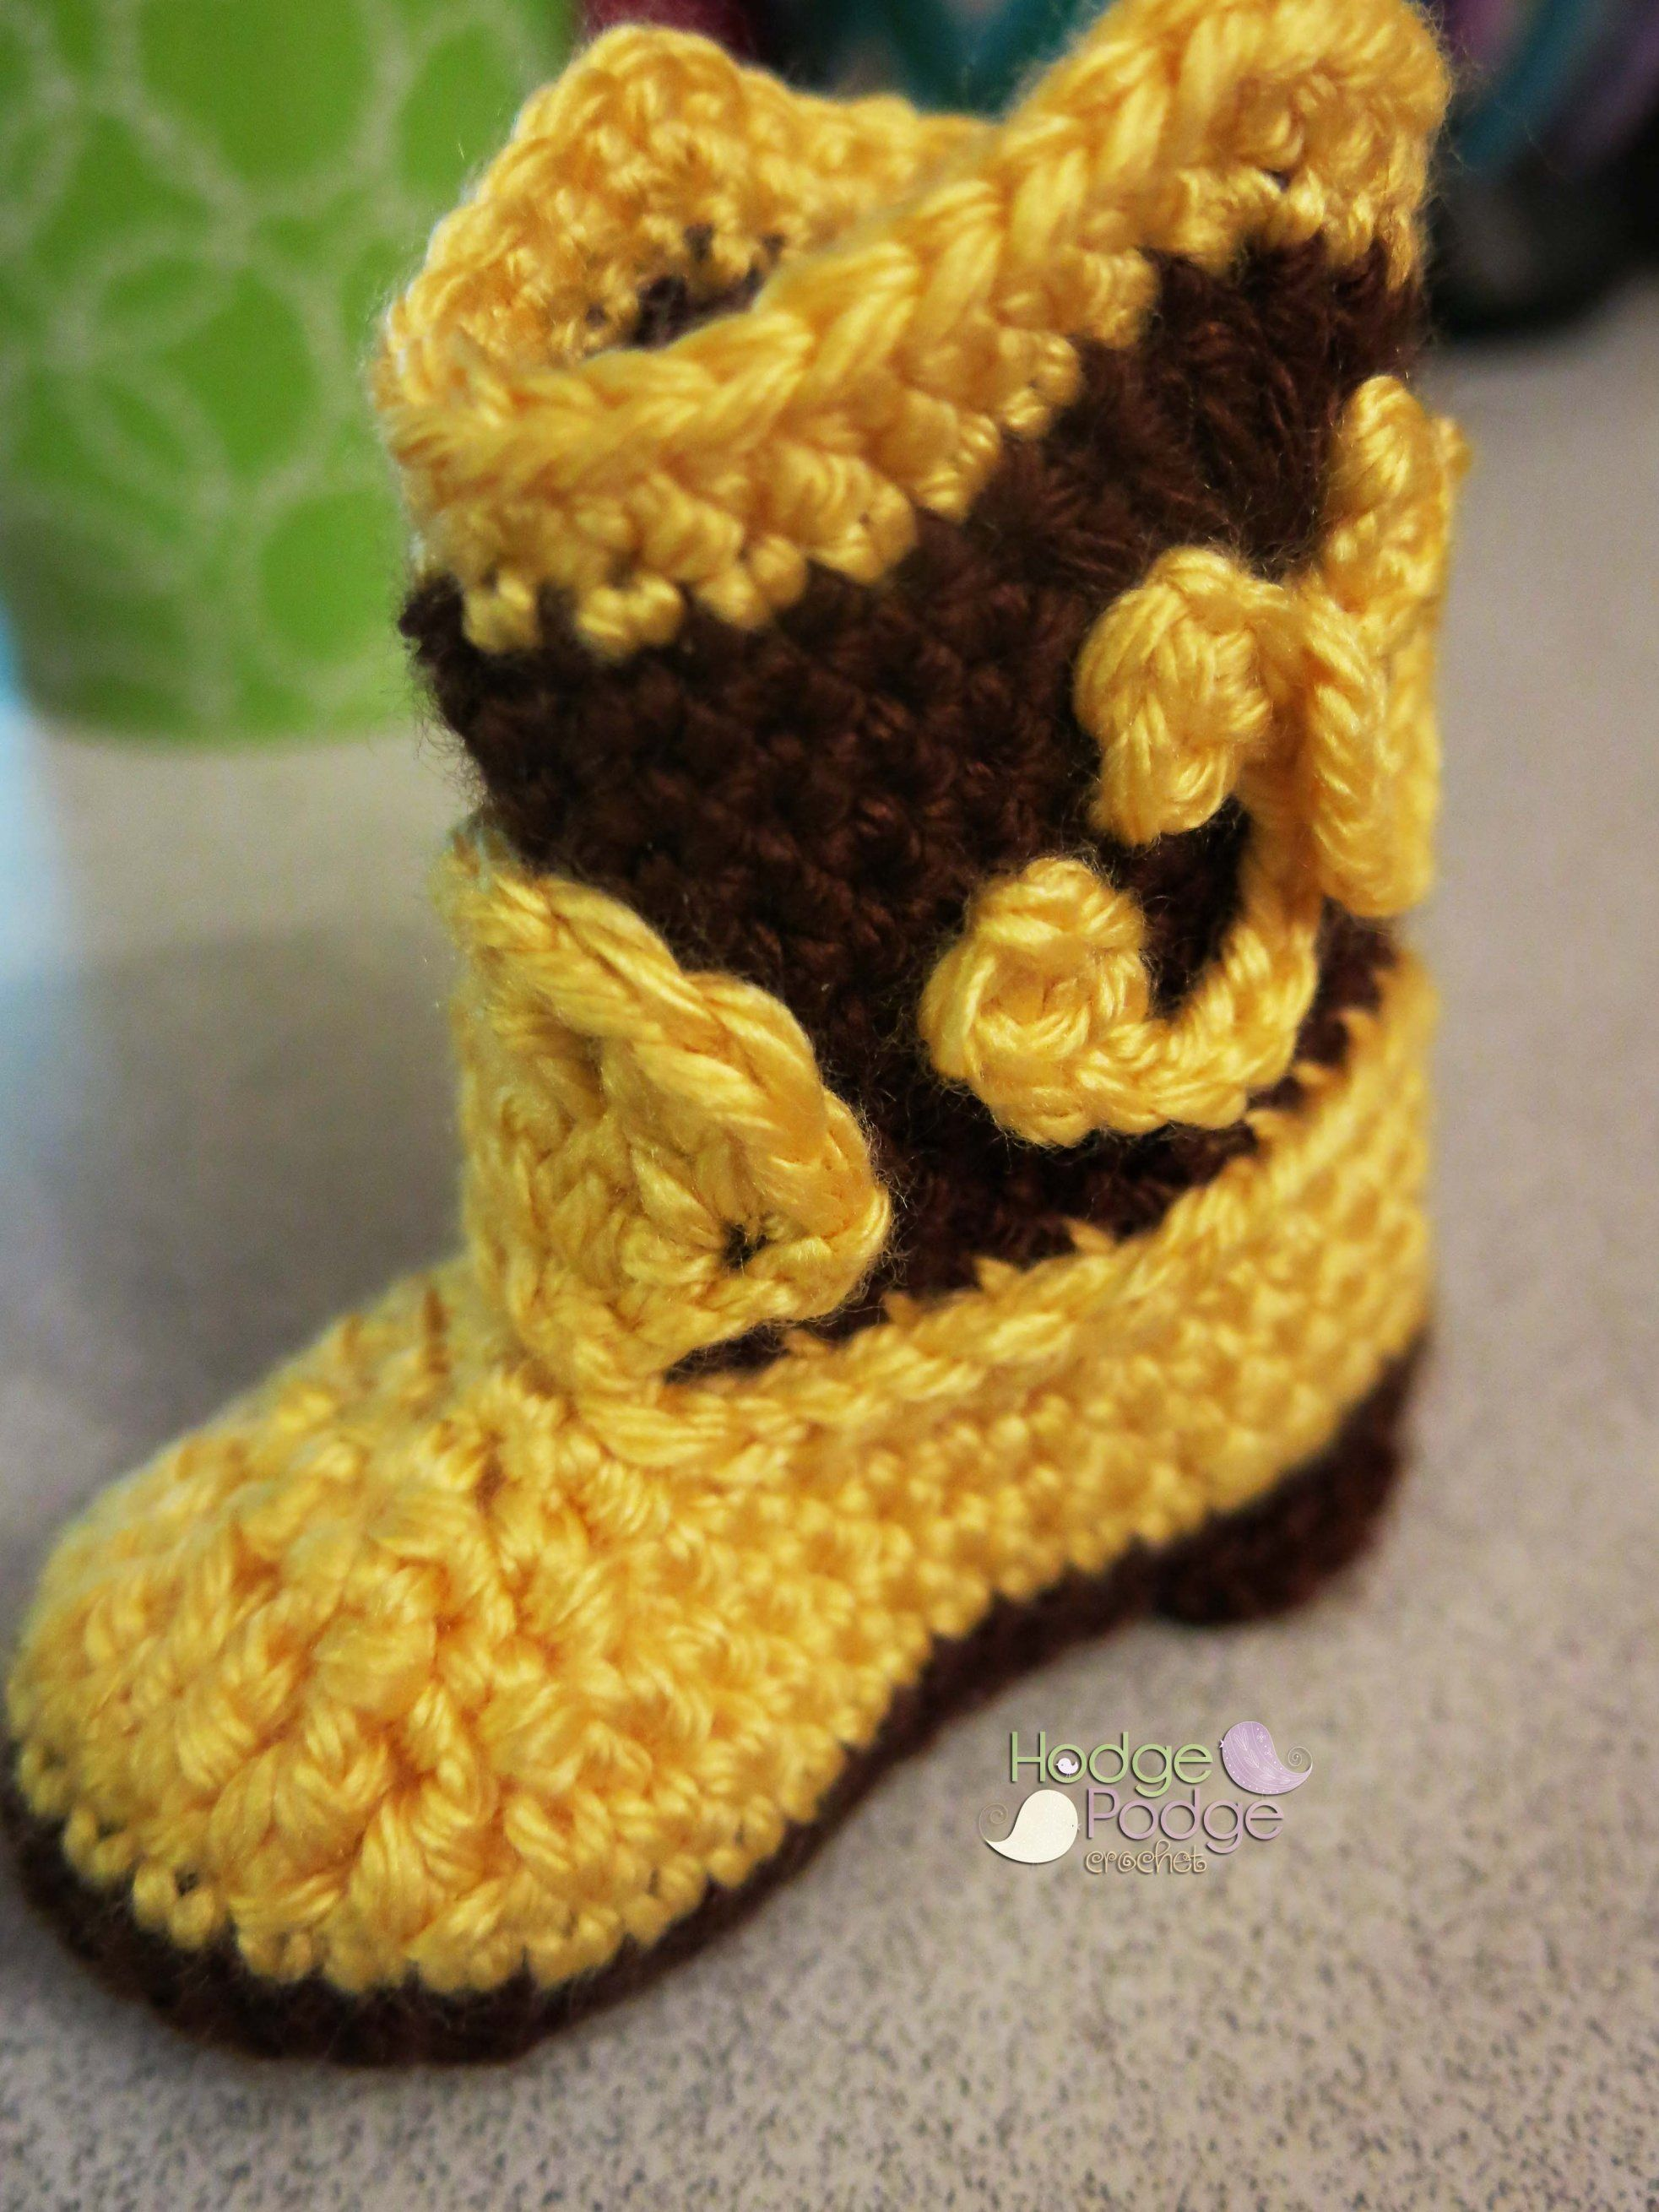 Cowboy boots cowboy boots cowboys and free pattern crochet httpshodgepodgecrochetwordpress cowboy boots free pattern bankloansurffo Images